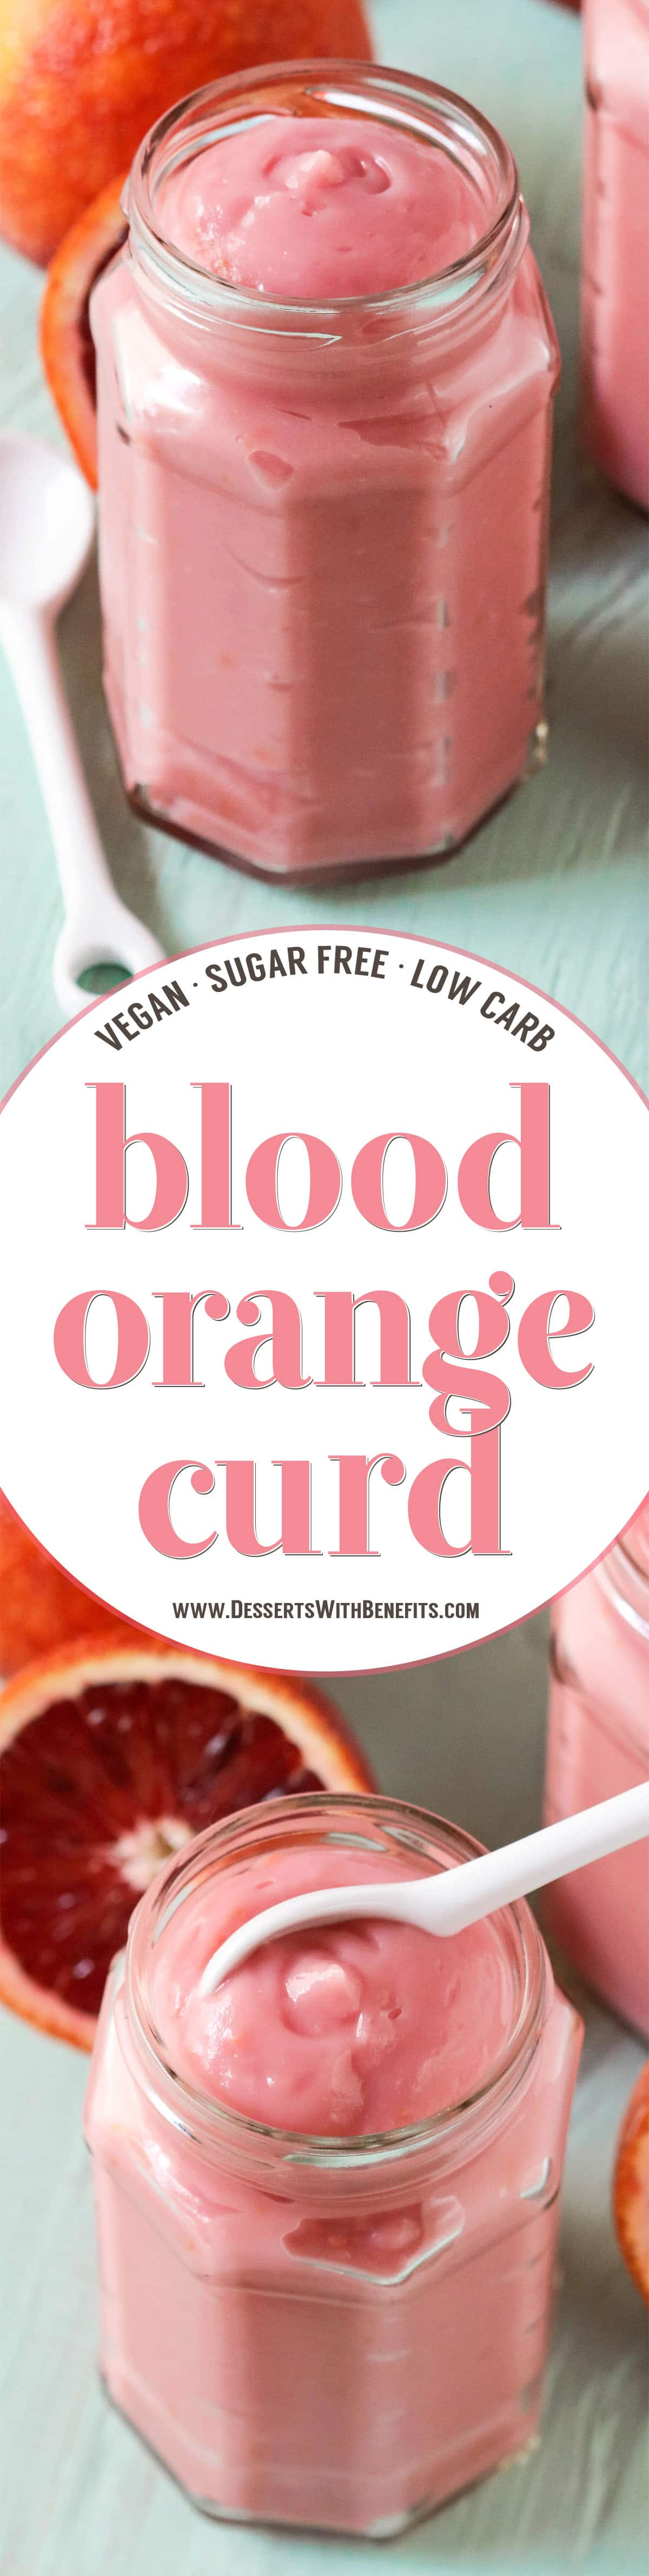 This Healthy Blood Orange Curd is ultra creamy, sweet, tart, and delicious. You'd never know it's sugar free, low carb, low fat, gluten free, dairy free, and vegan! Scoop it over yogurt, layer it in parfaits, spoon some over Vanilla Ice Cream, or dig in straight up with a spoon.